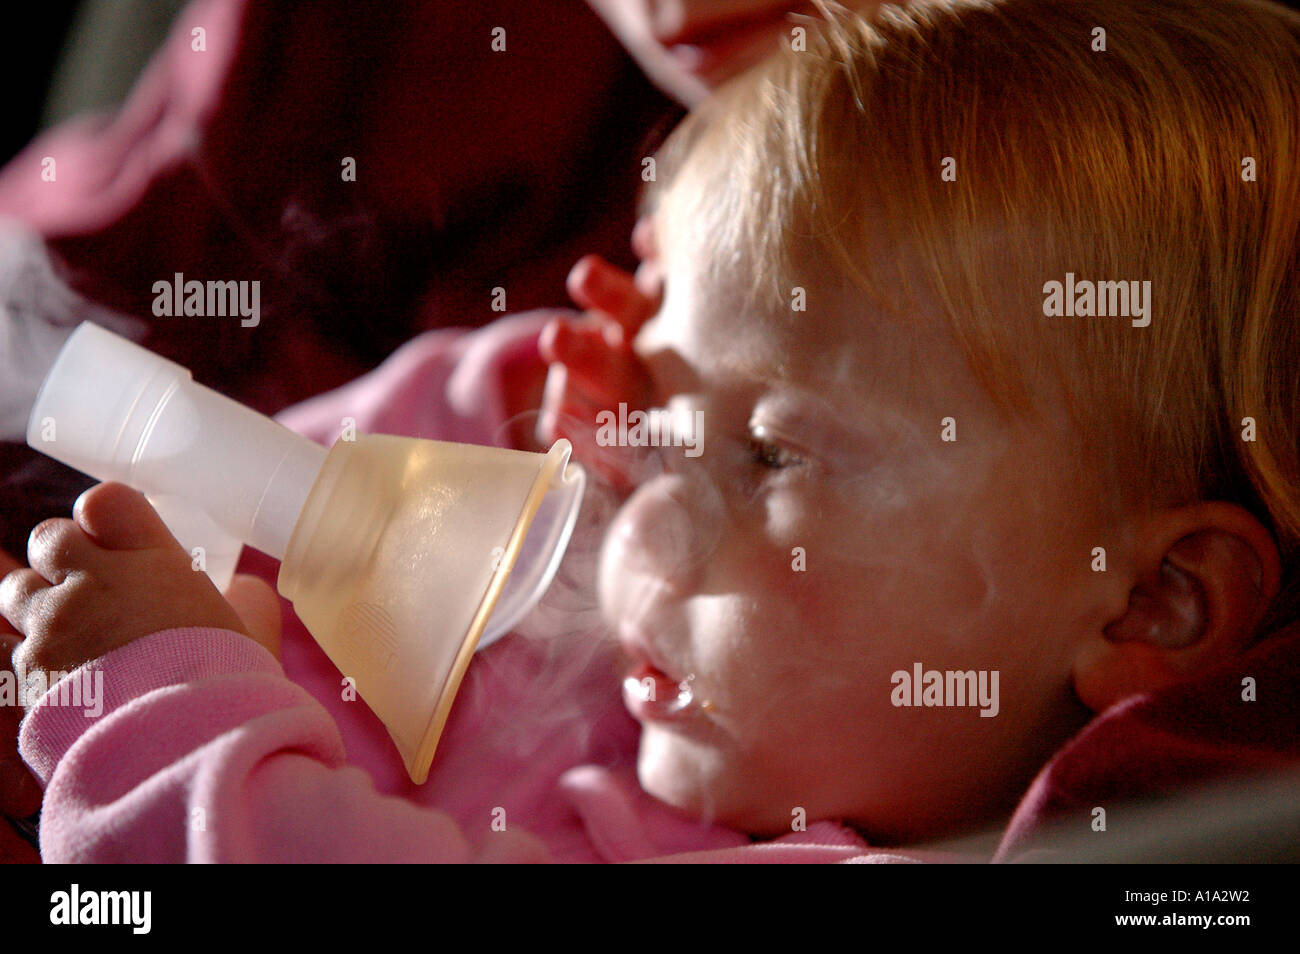 A child uses a nebulizer for her asthma. - Stock Image